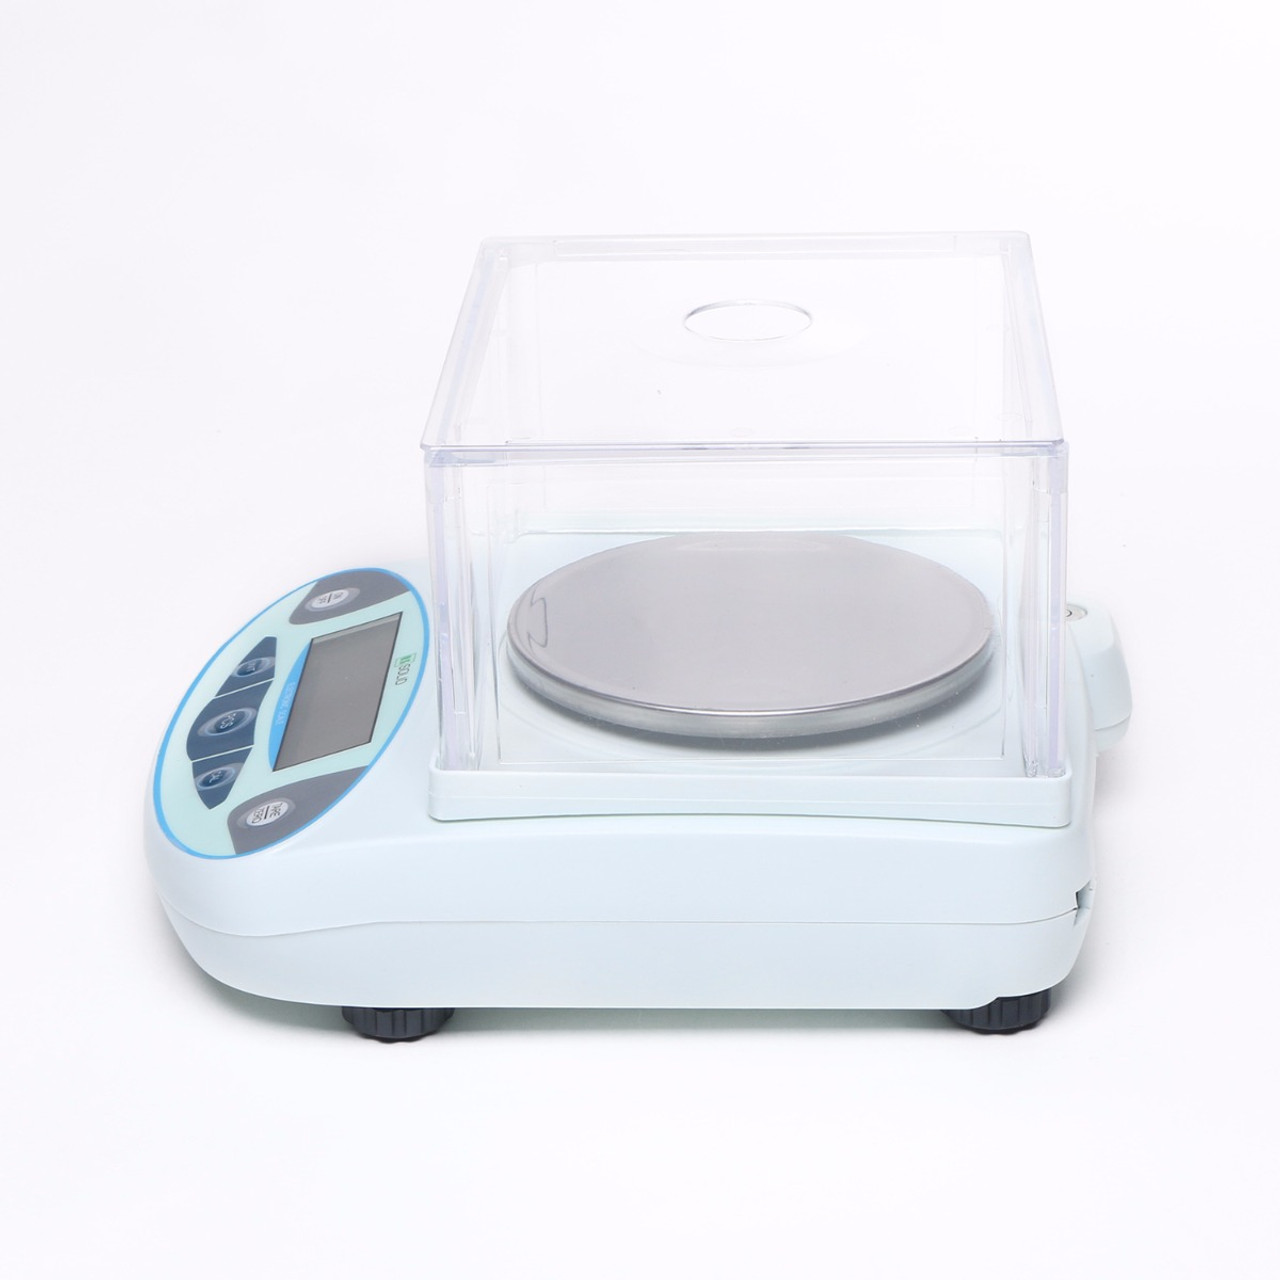 b77fda4efb0d 3000g x 0.01 g Lab Scale, 0.01 g Digital Analytical Balance